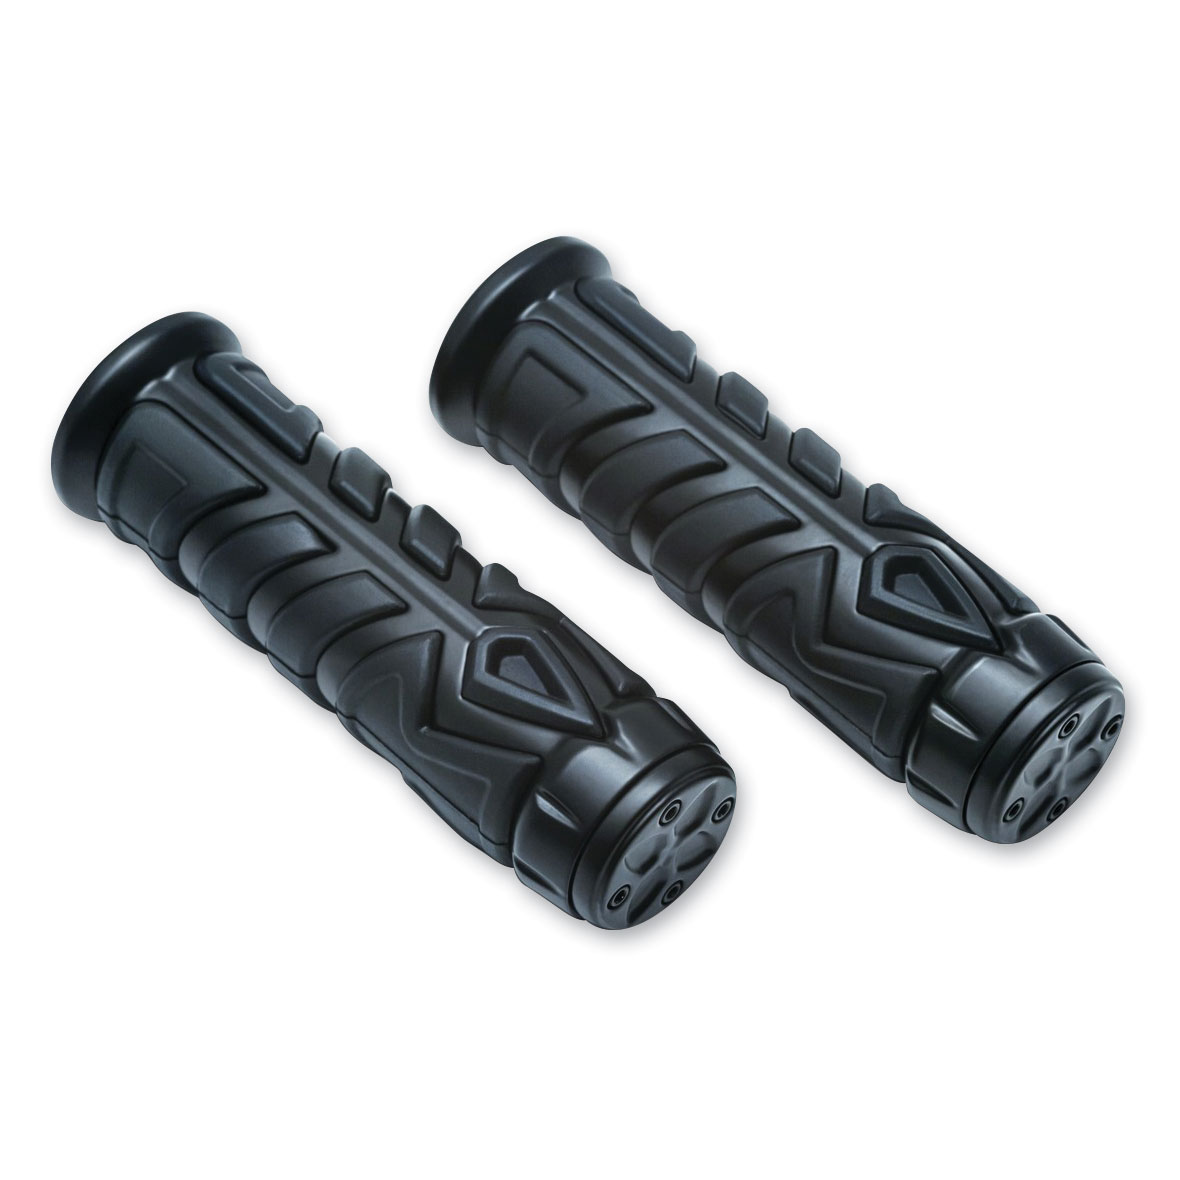 "Kuryakyn Spear Grips Black for 1"" Bars"